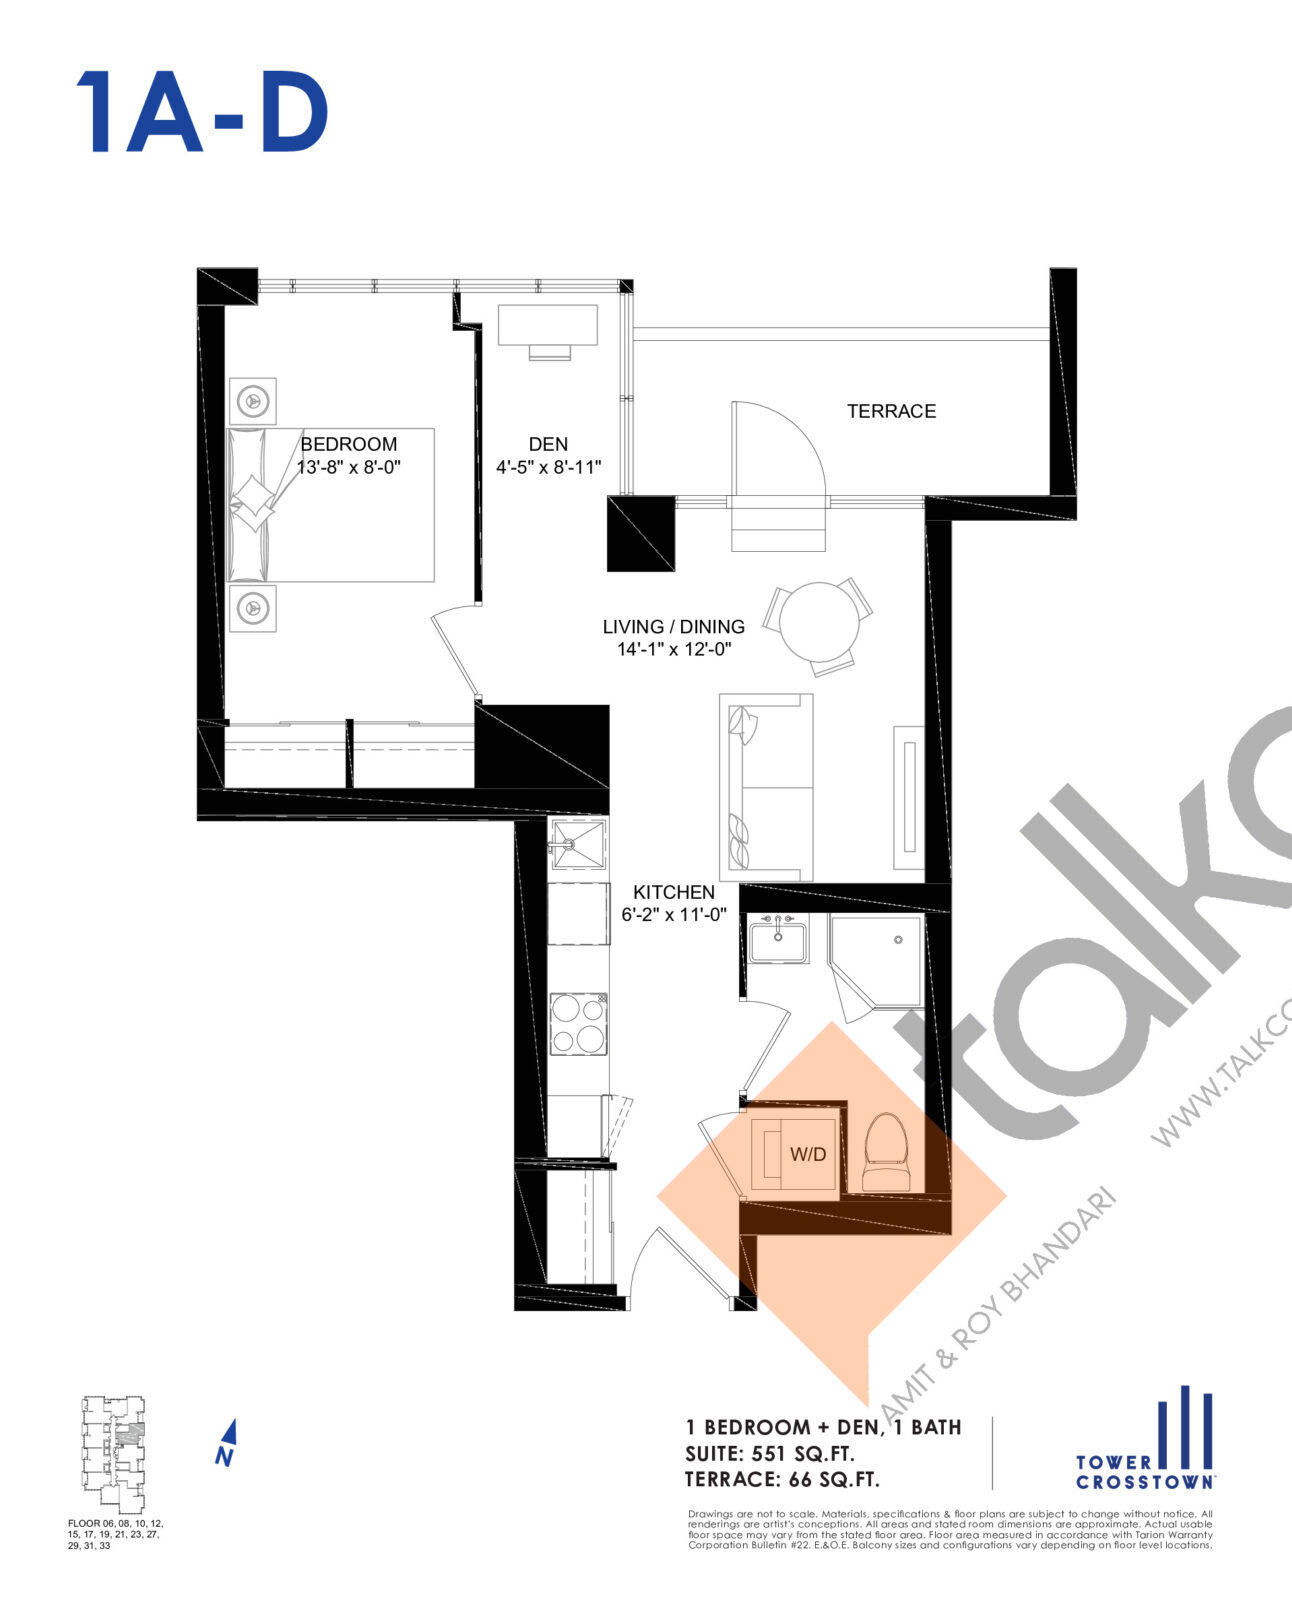 1A-D Floor Plan at Crosstown Tower 3 Condos - 551 sq.ft